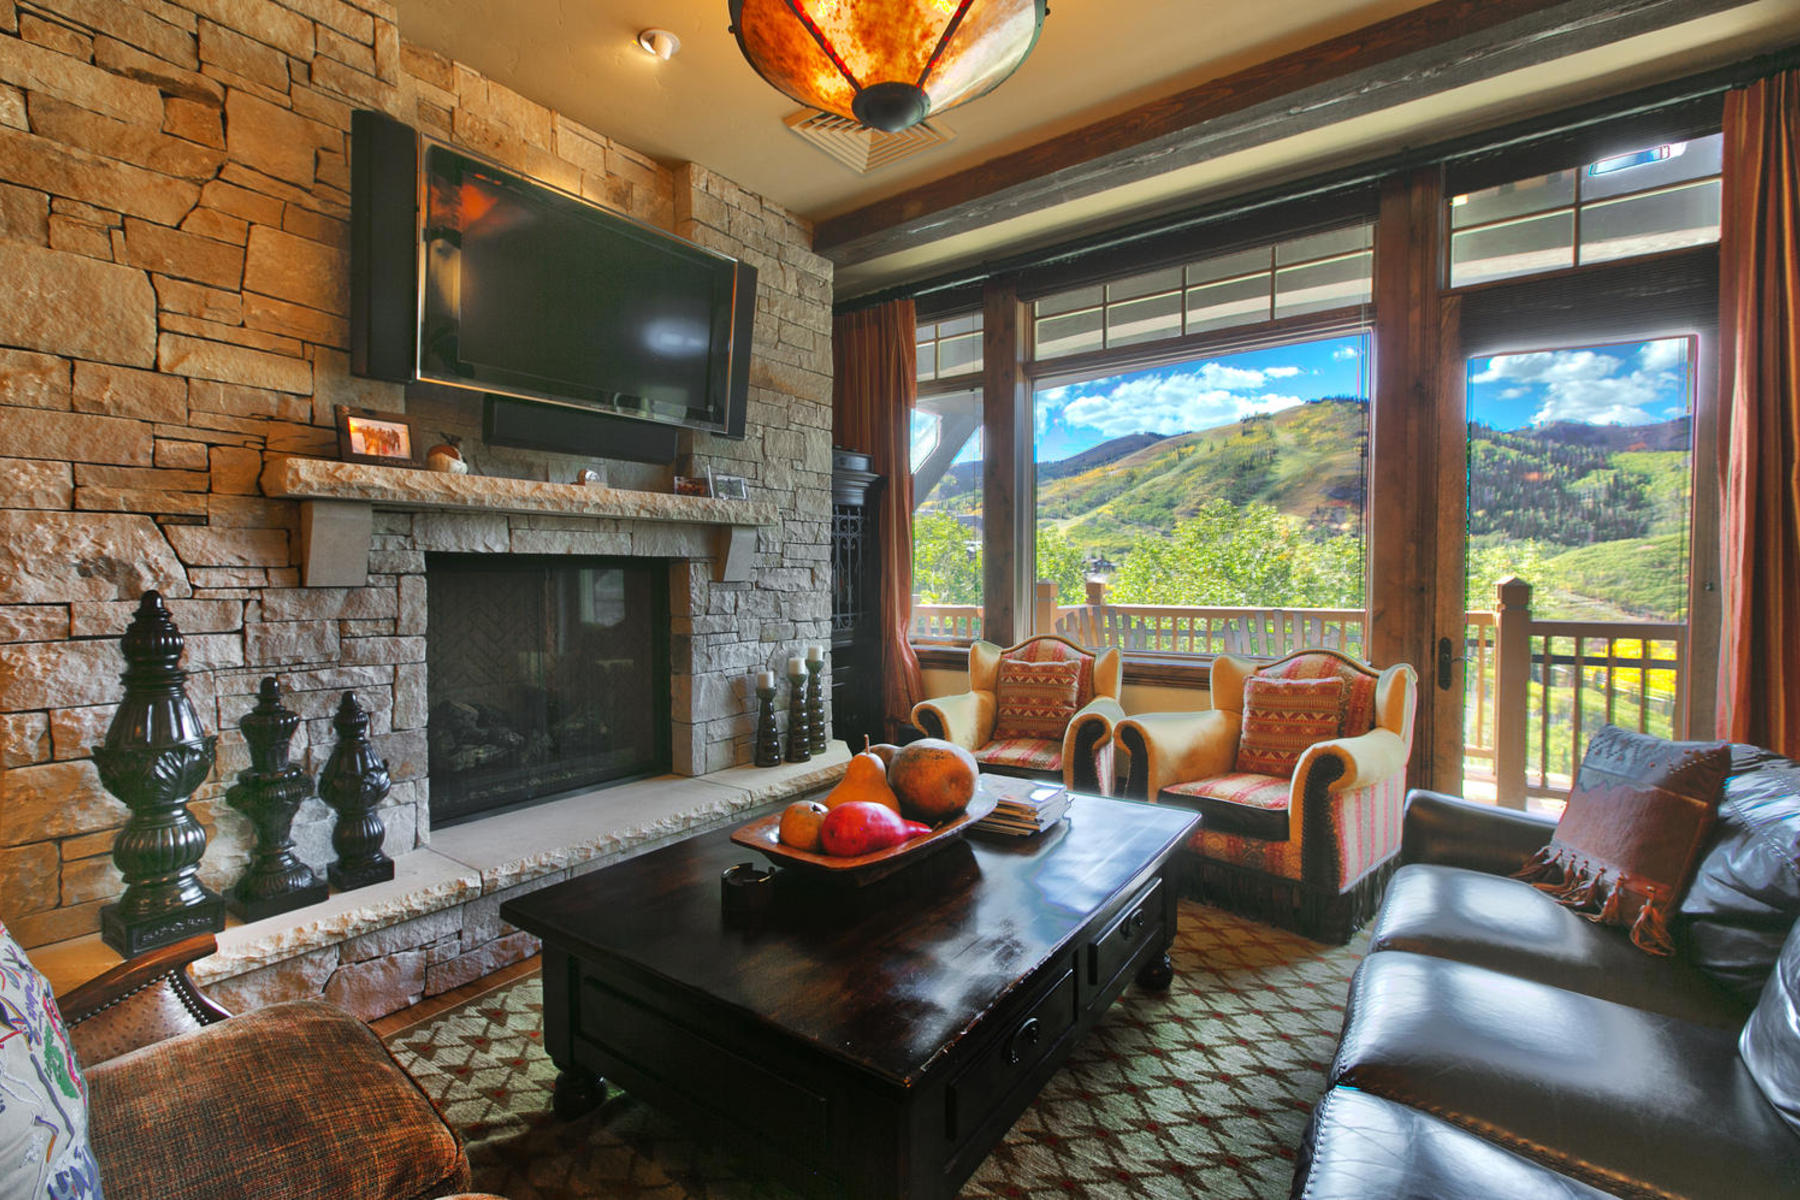 Villa per Vendita alle ore Gret Opportunity Priced to Sell 8902 Empire Club Dr #503 Park City, Utah 84060 Stati Uniti